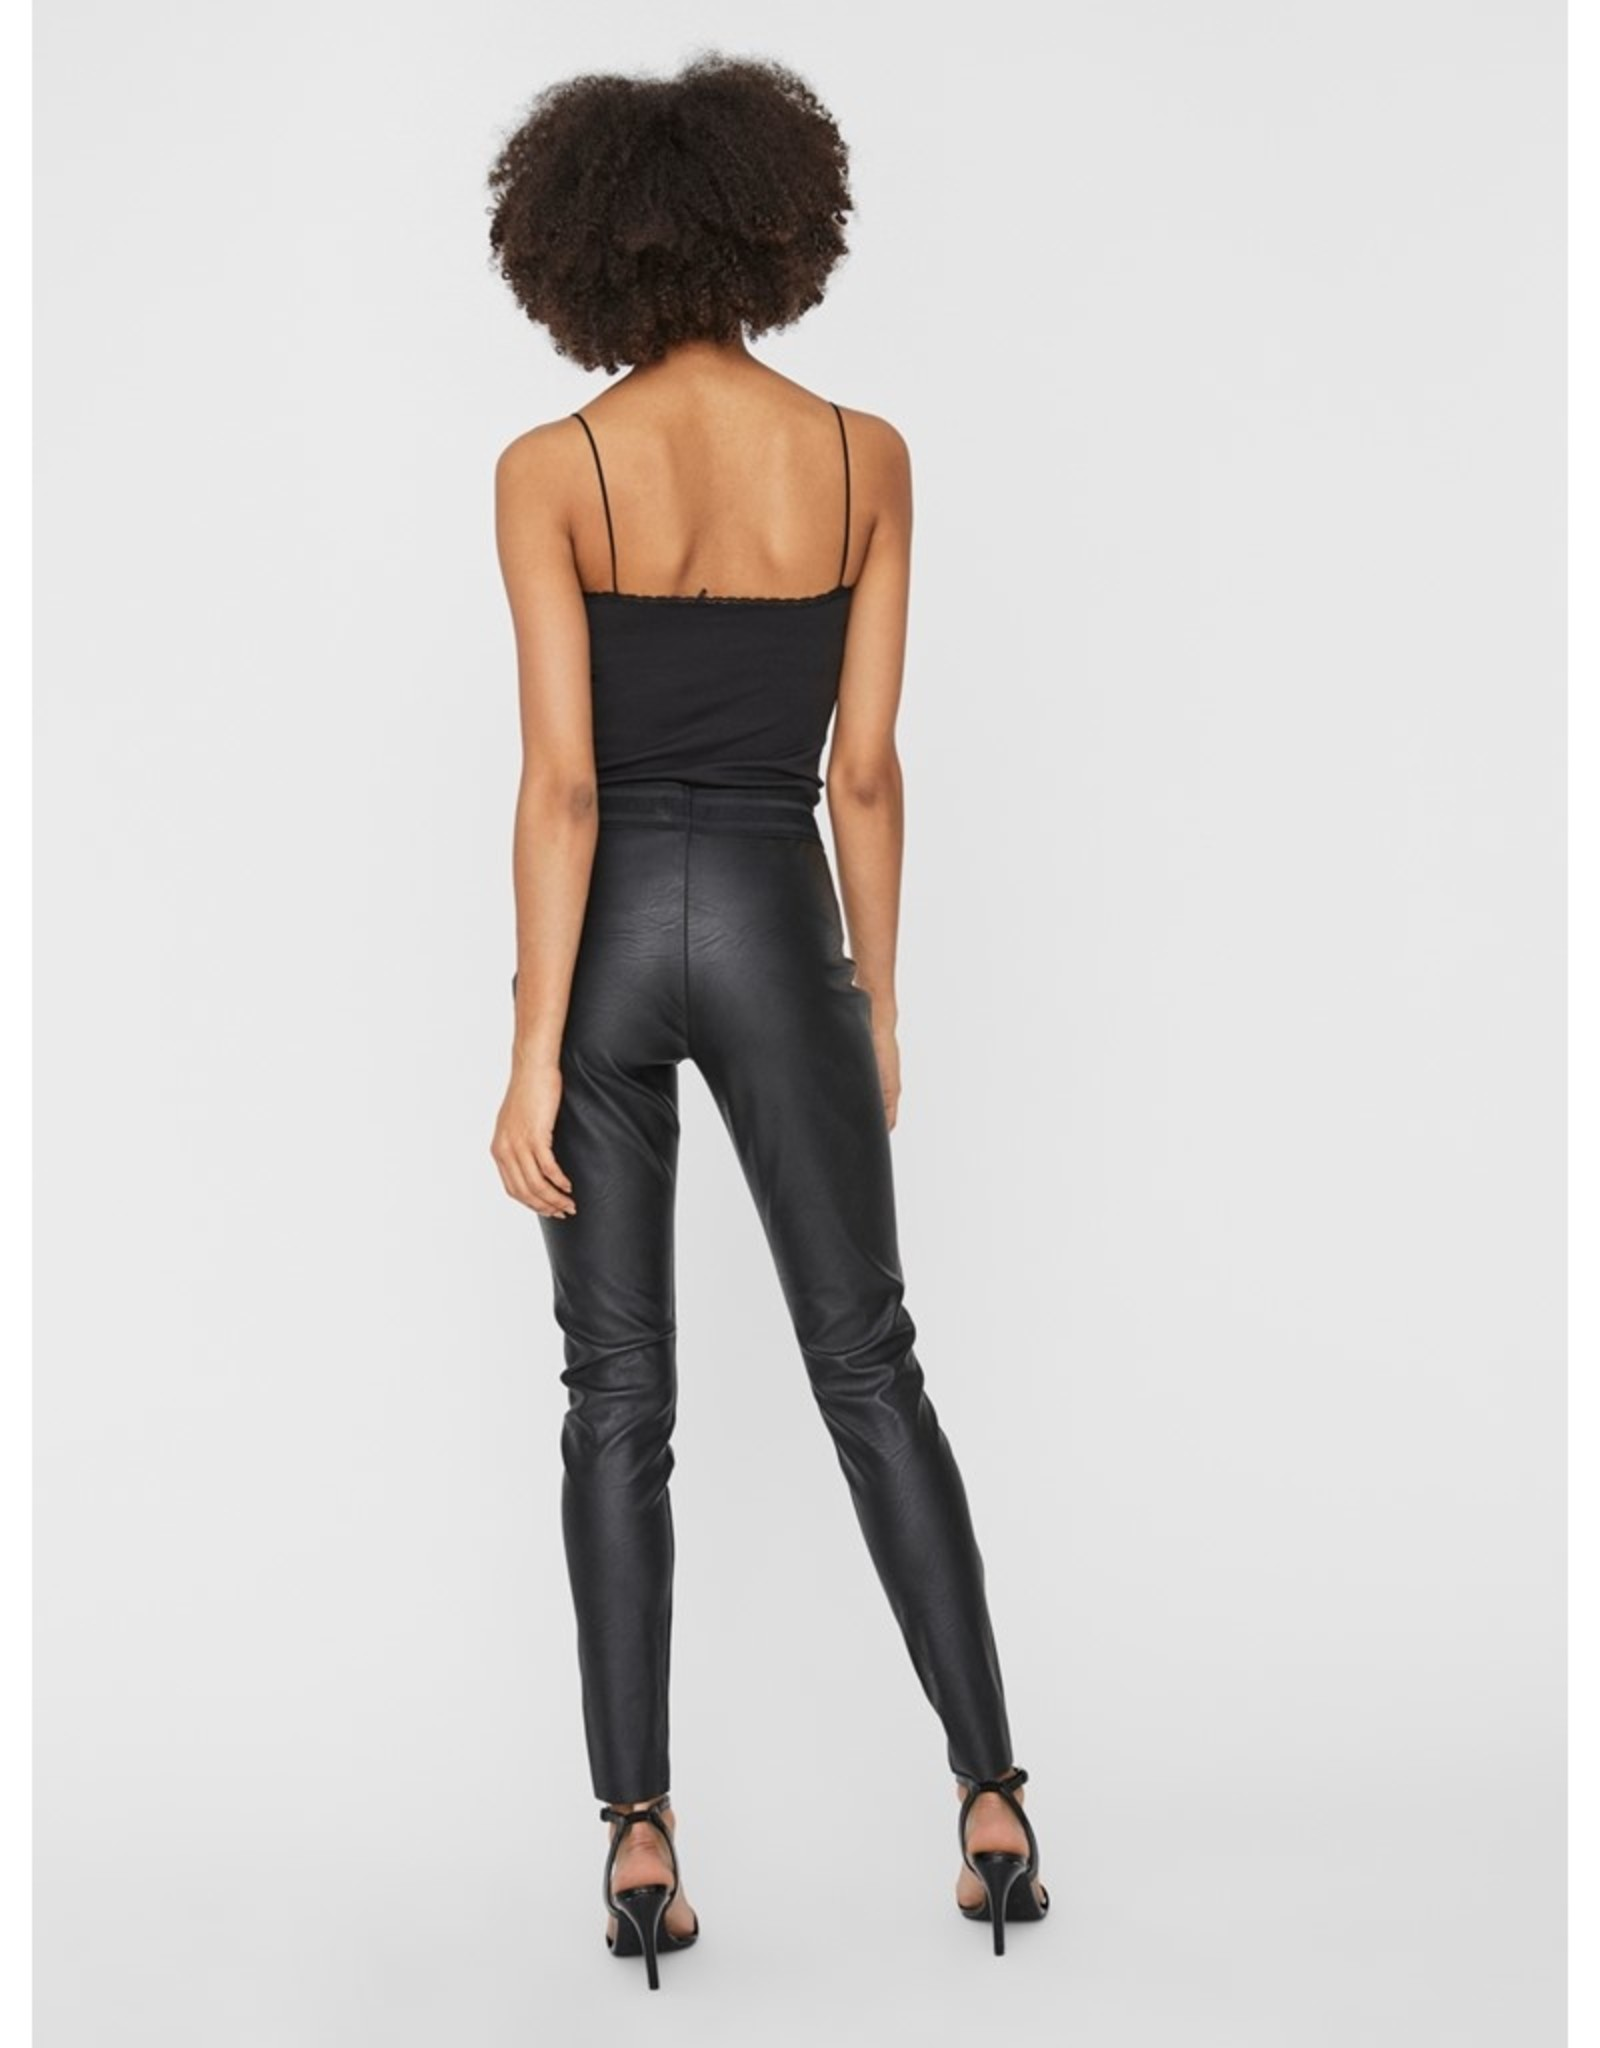 Vero Moda Faux Leather Leggings